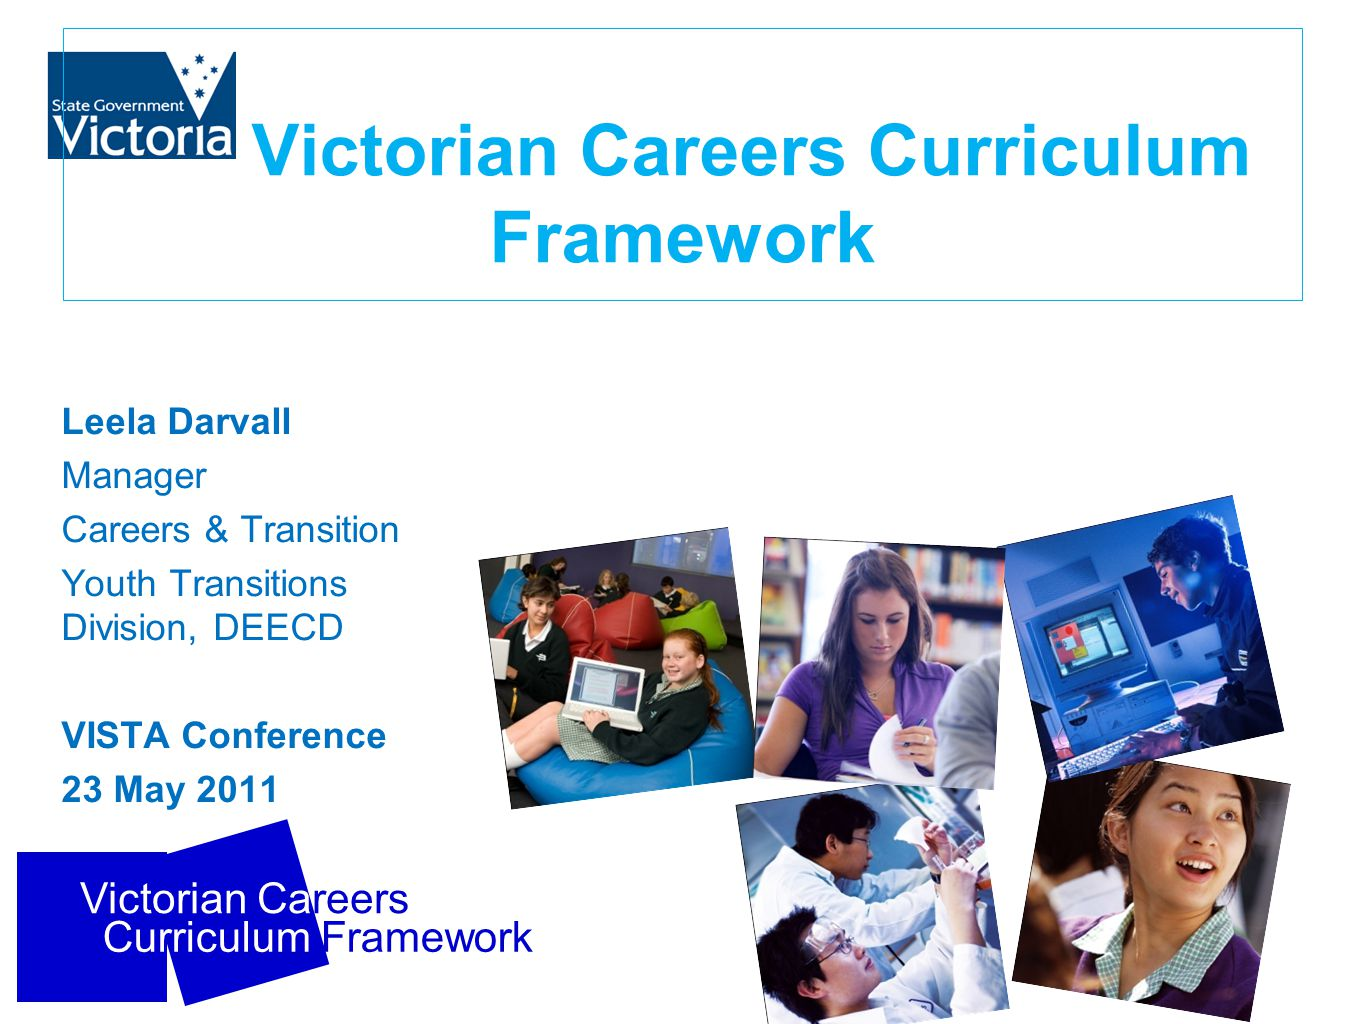 Curriculum Framework Victorian Careers 6 Steps to Success DiscoverYear 7 ExploreYear 8 Focus Year 9 PlanYear 10 Decide Year 11 Apply Year 12 My Career Capabilities ACE & TAFE